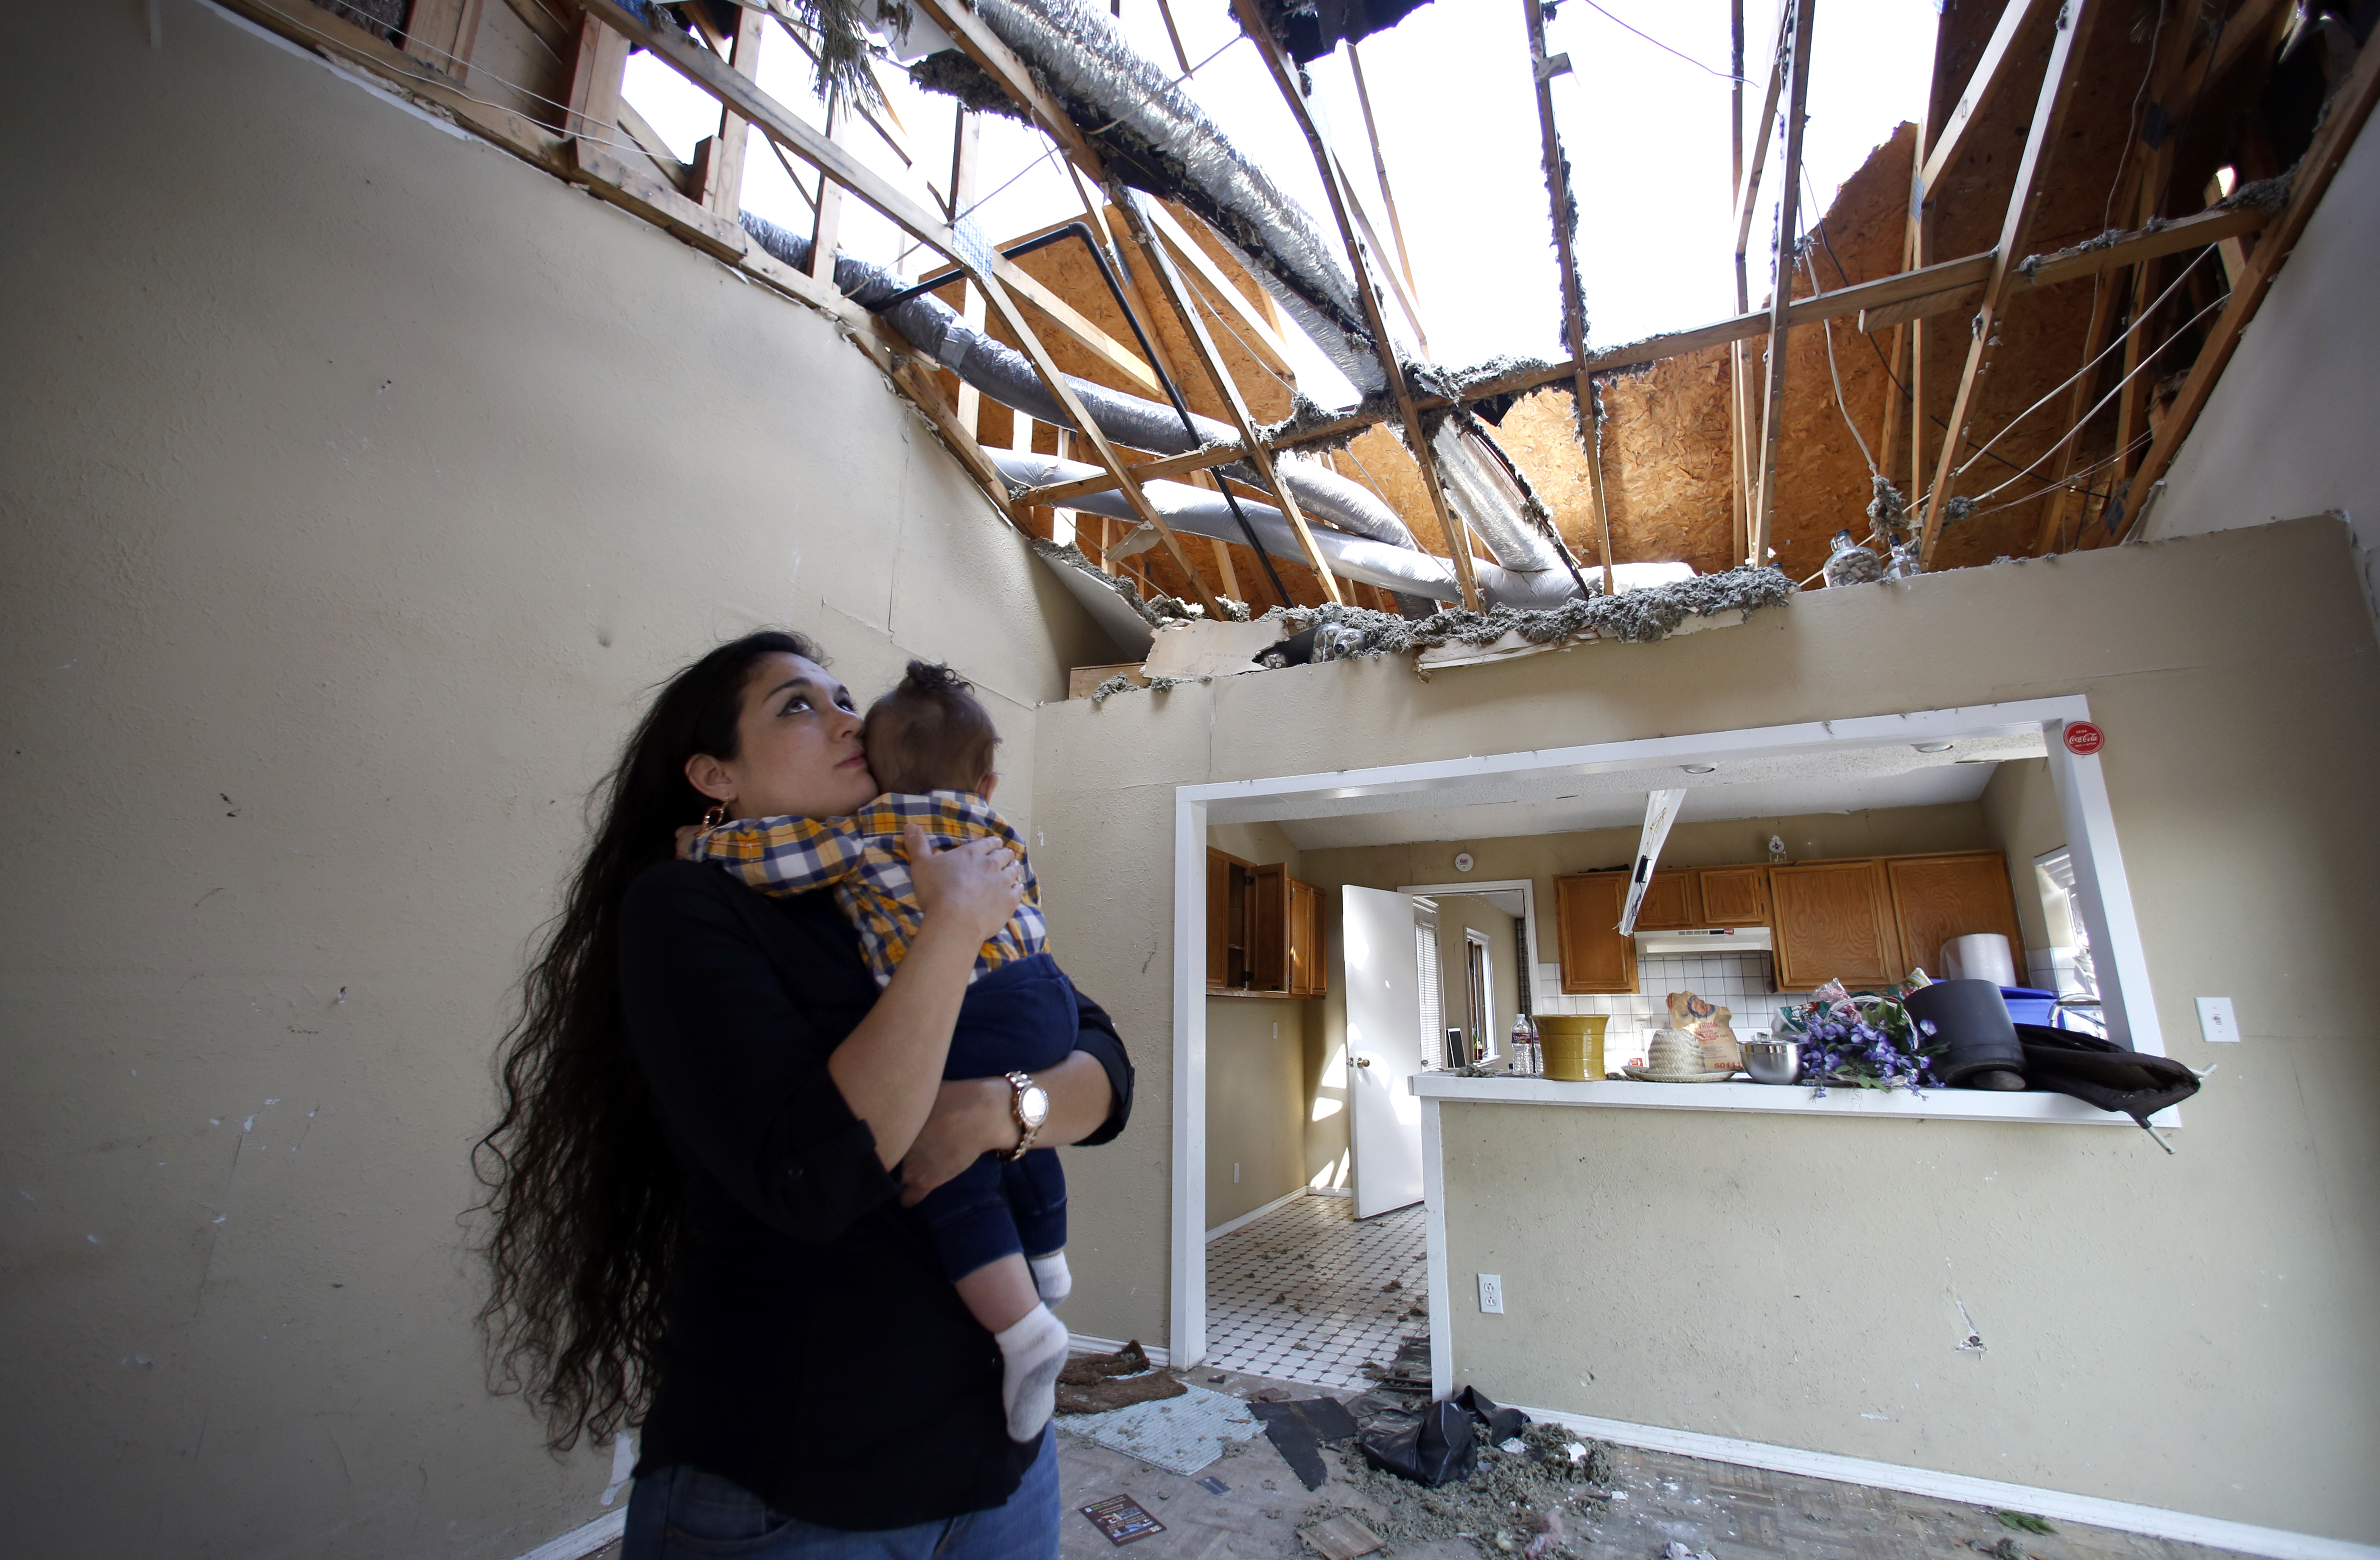 Lindsay Diaz and her son, 7-month-old Arian Krasniqui, in the livingroom of their Rowlett home where they hunkered down in the bathtub for safety during the December tornadoes. They have bounced around from family homes to hotels waiting on a temporary rent house to open up. Photographed Friday, February 19, 2016. Photo/Lara Solt